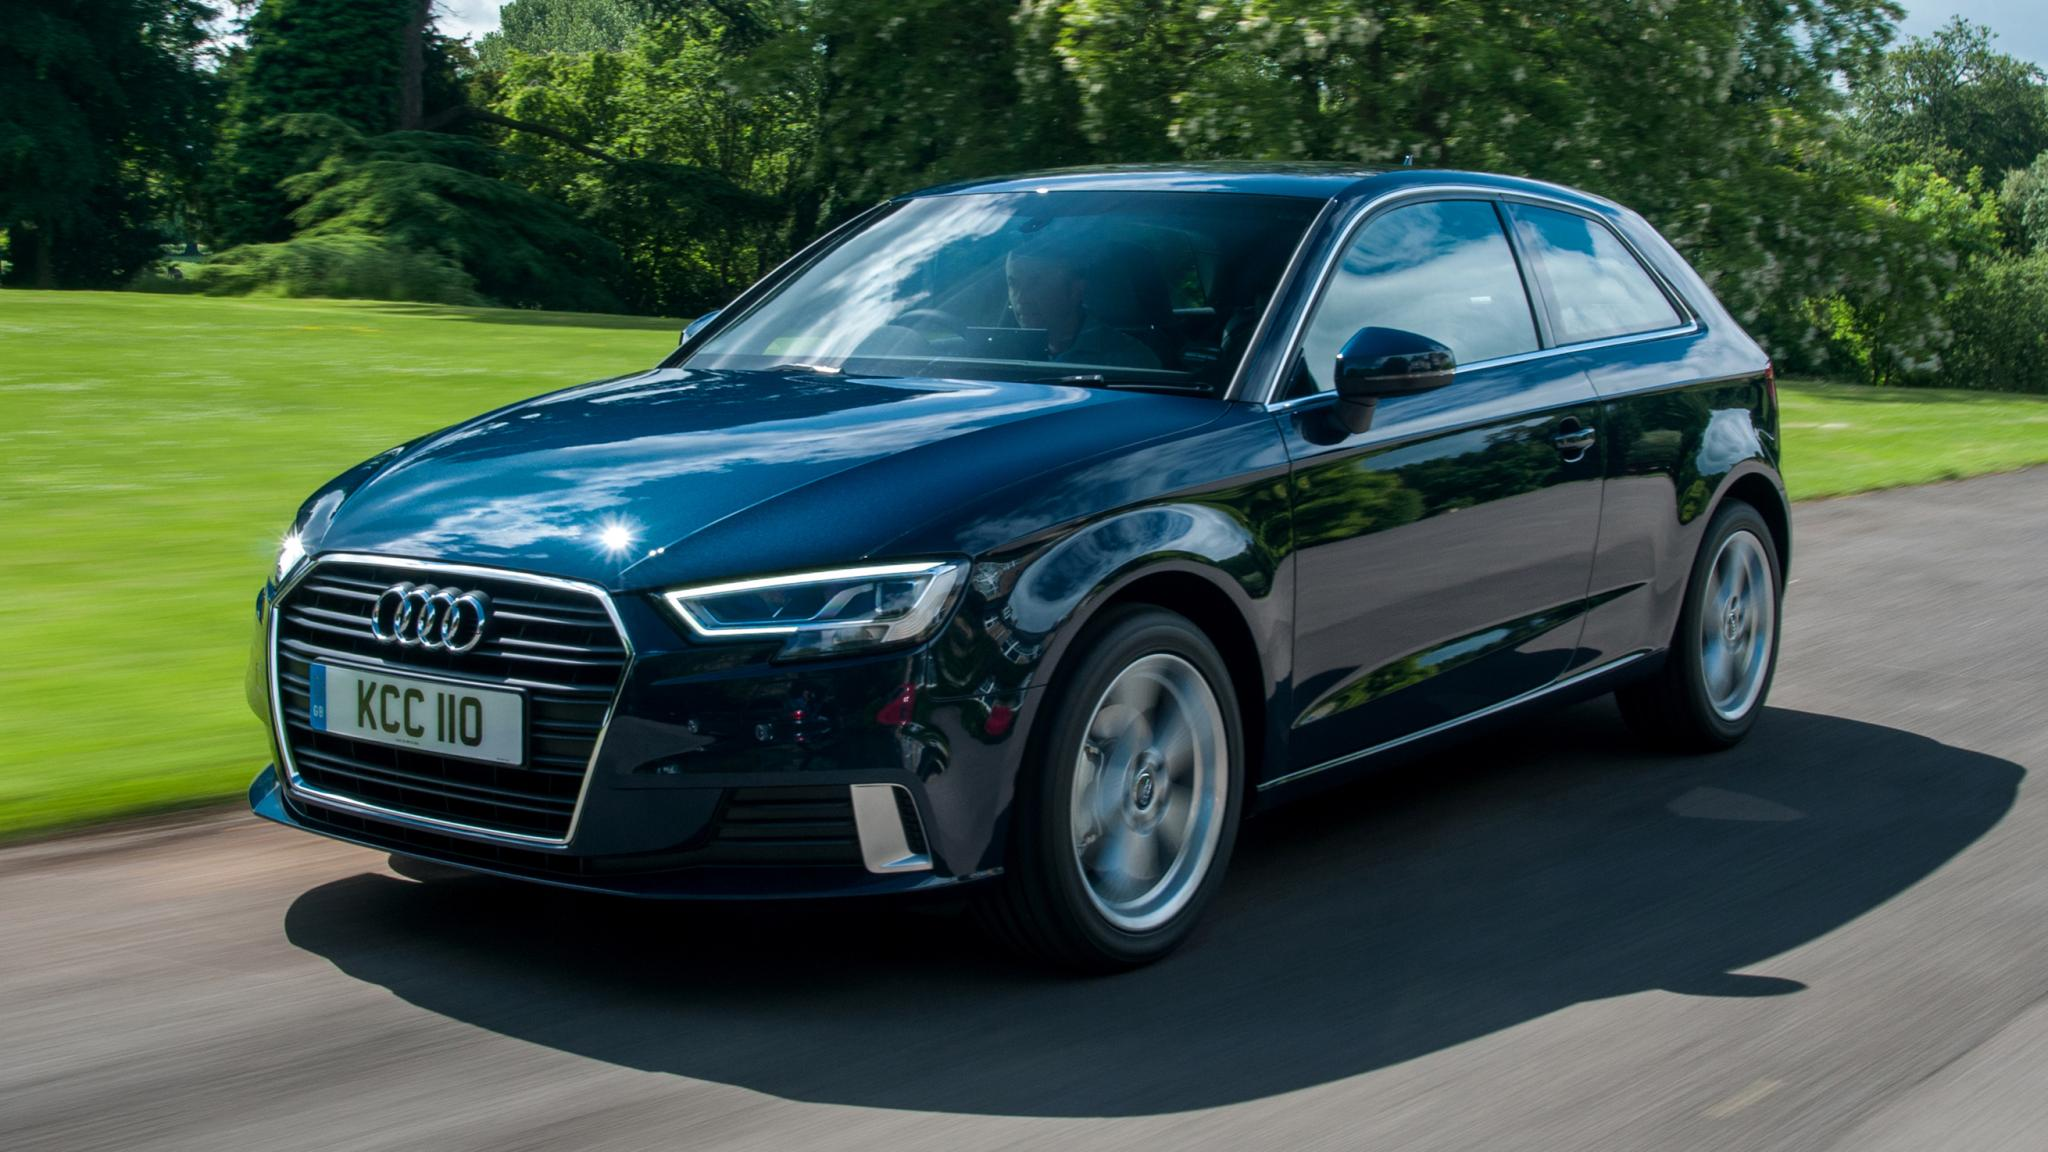 Audi A3 review: 1.0-litre hatch tested in the UK